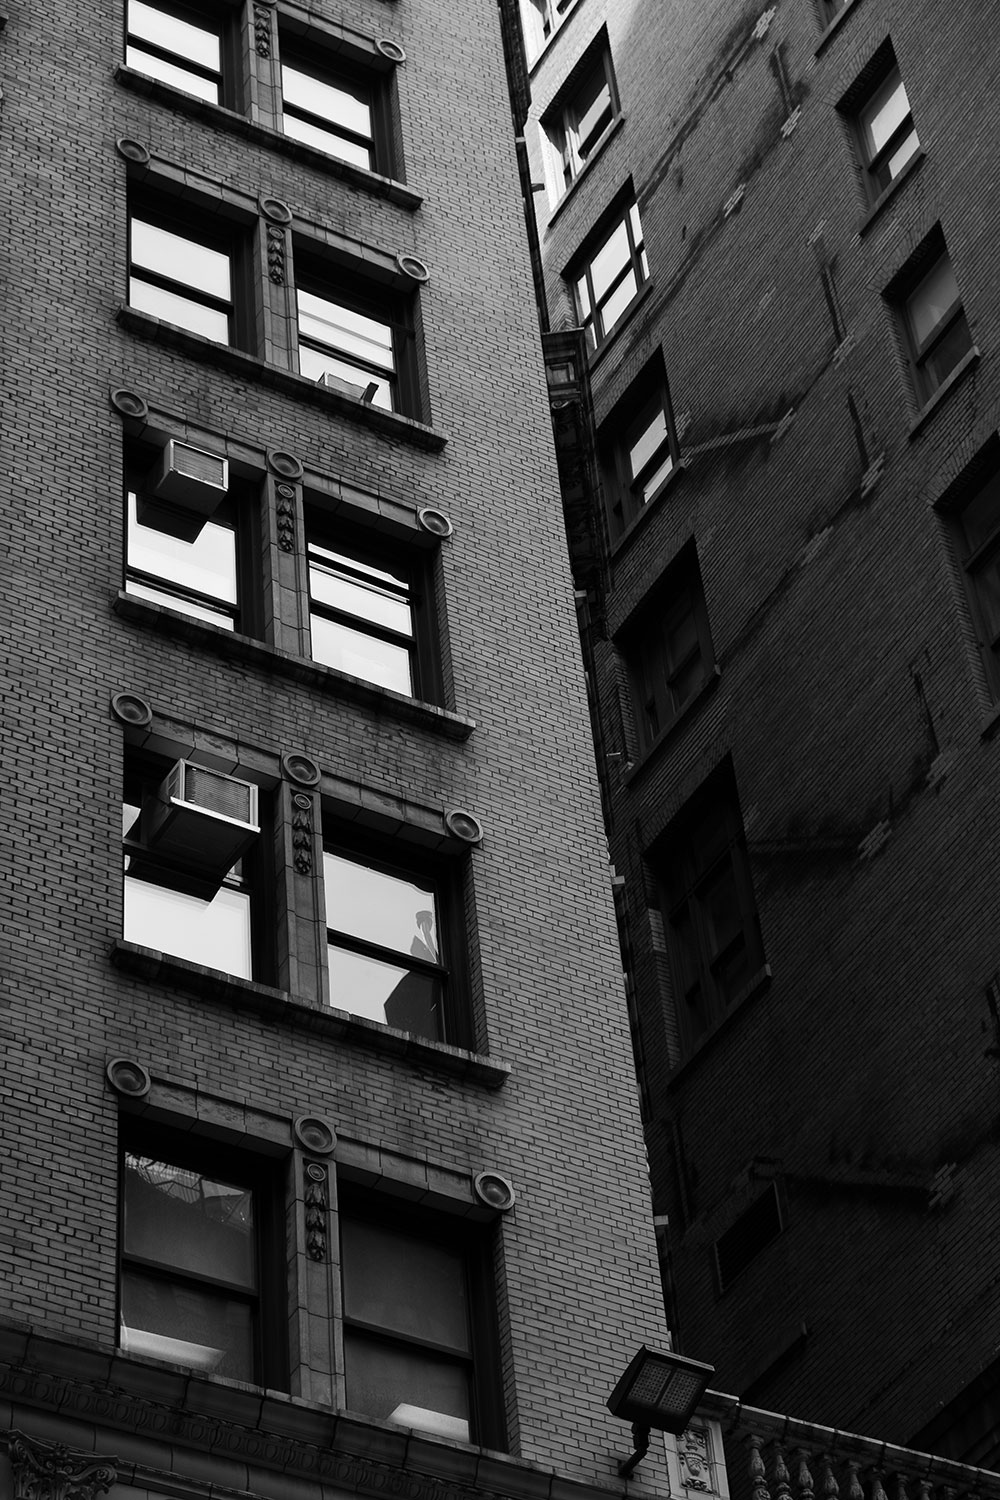 windows shine in the afternoon sun in NYC